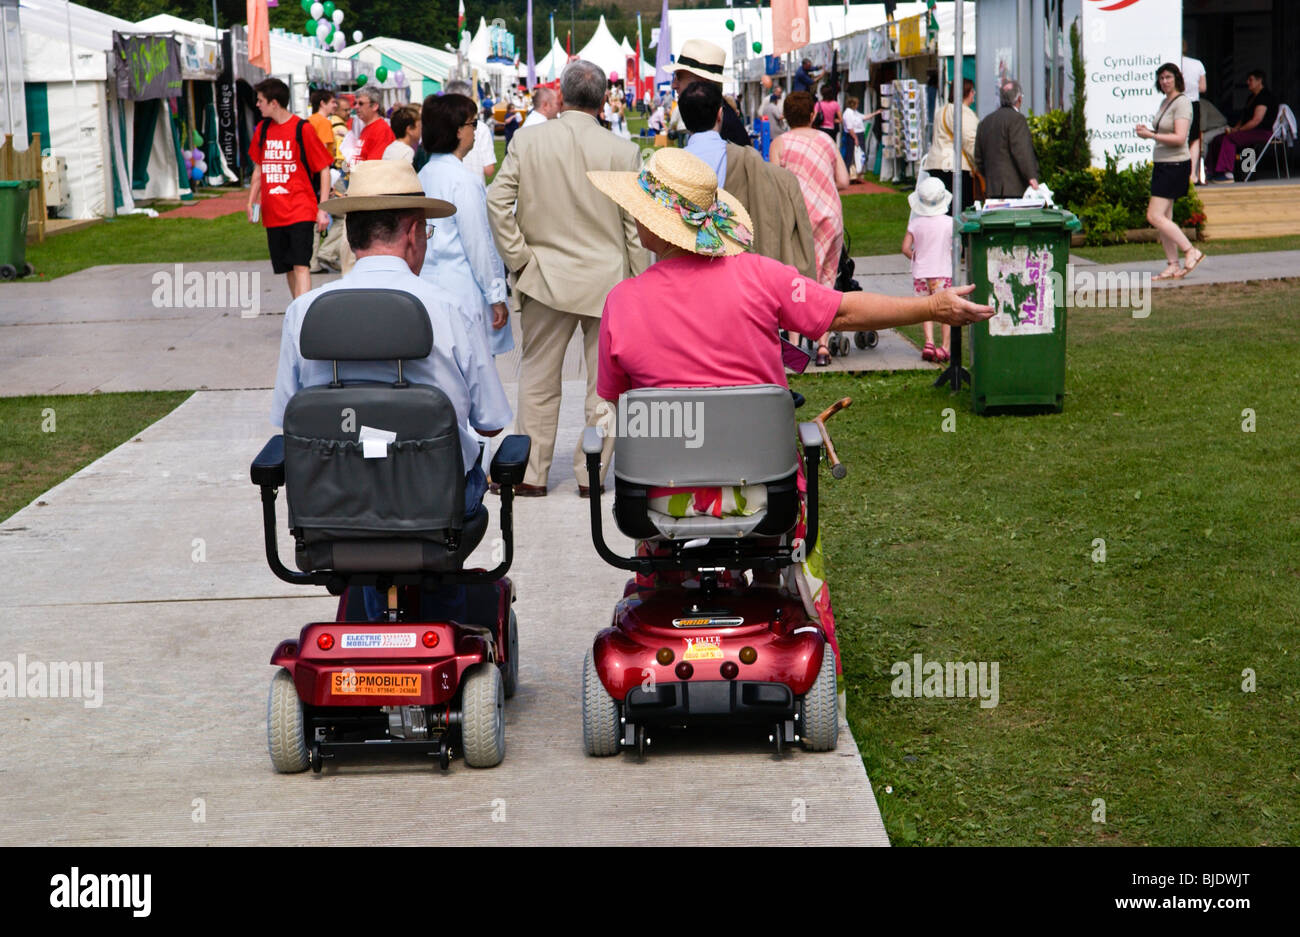 Man and woman on disability scooters at National Eisteddfod of Wales Newport Gwent South Wales UK - Stock Image